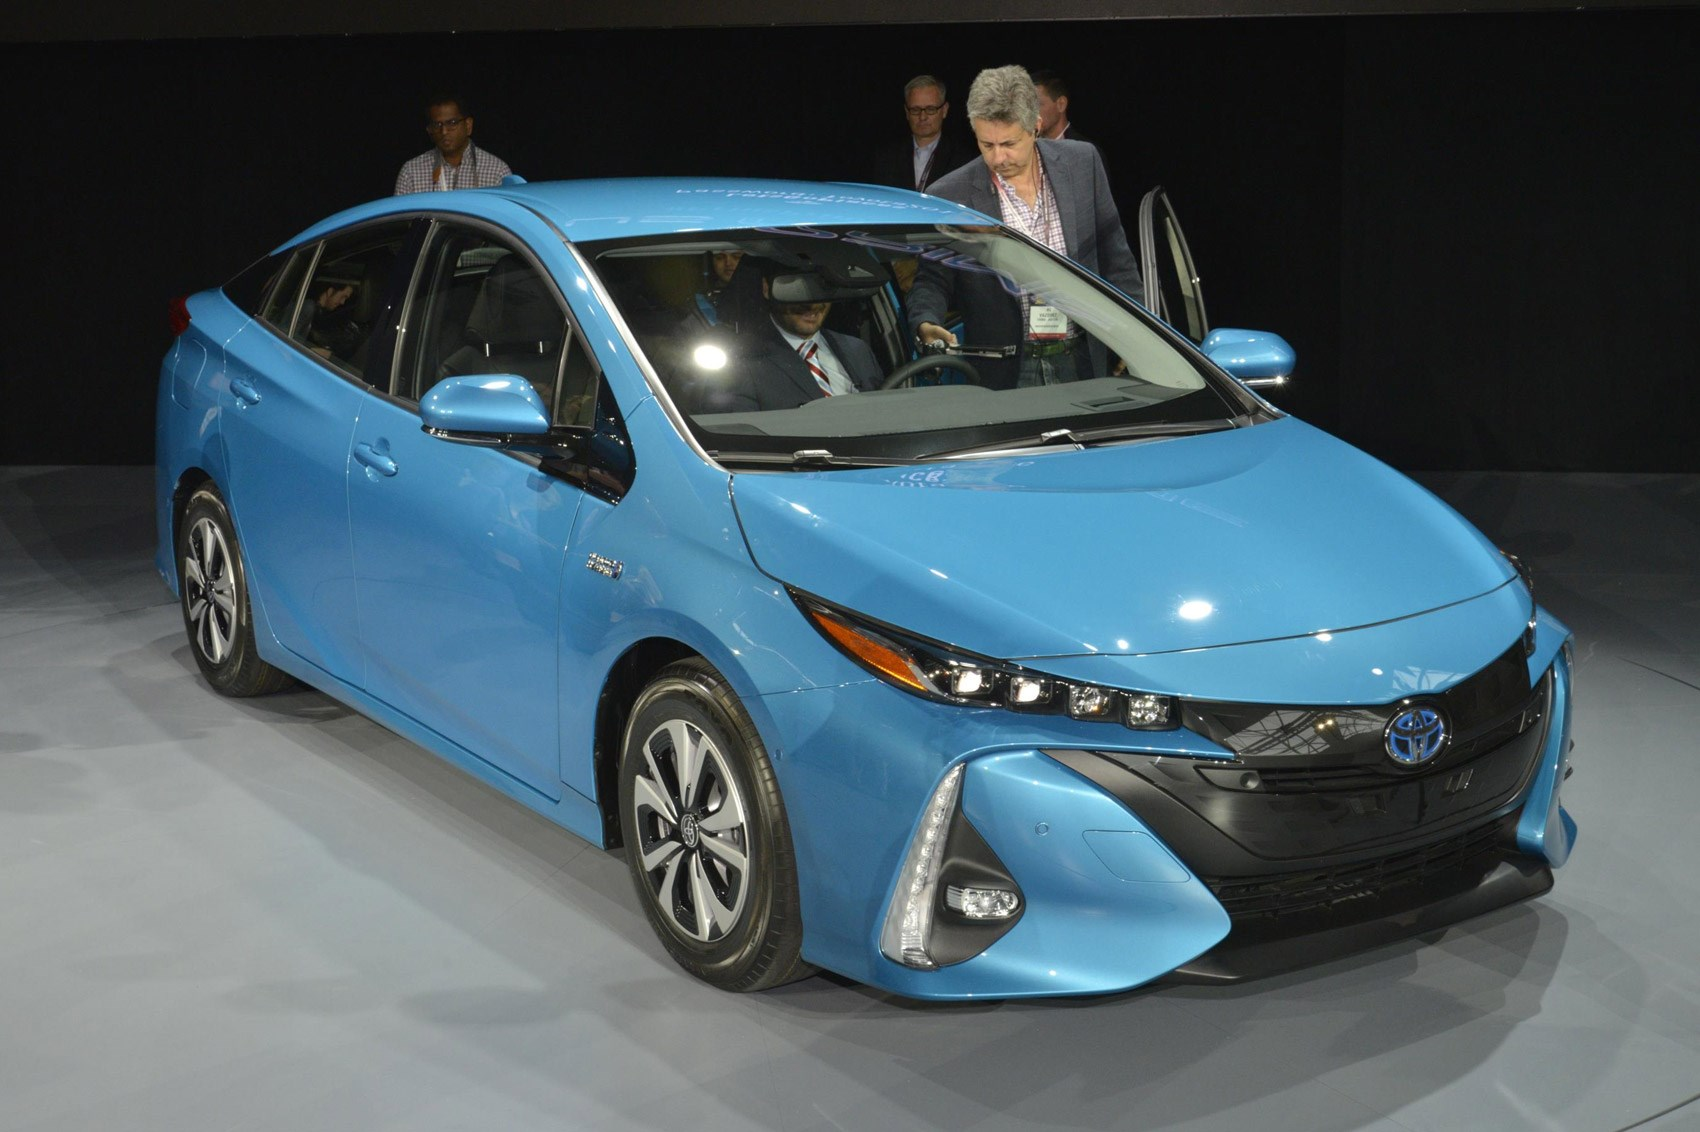 More Info On Toyota Prius